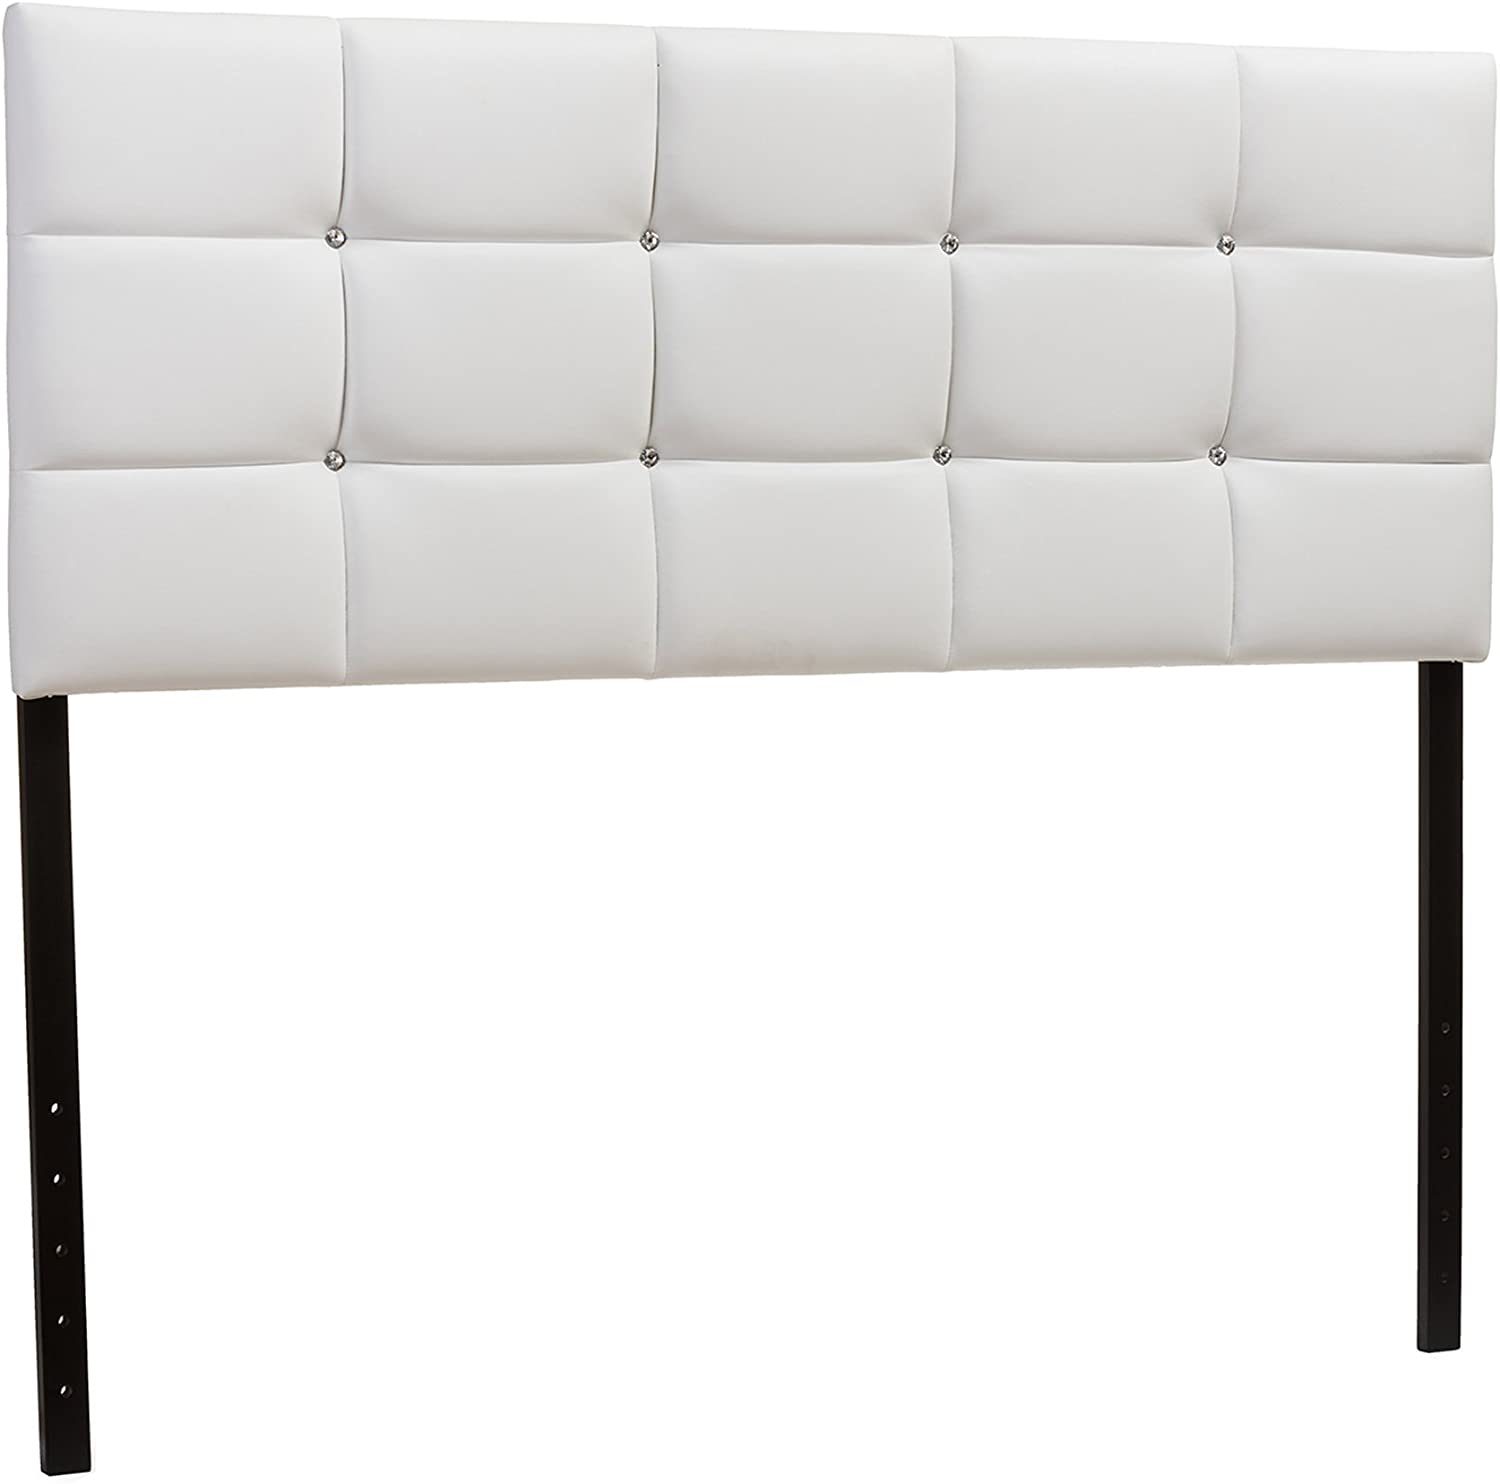 Baxton Studio Bordeaux Faux Leather Upholstered Button Tufted Column Headboard, Queen, White